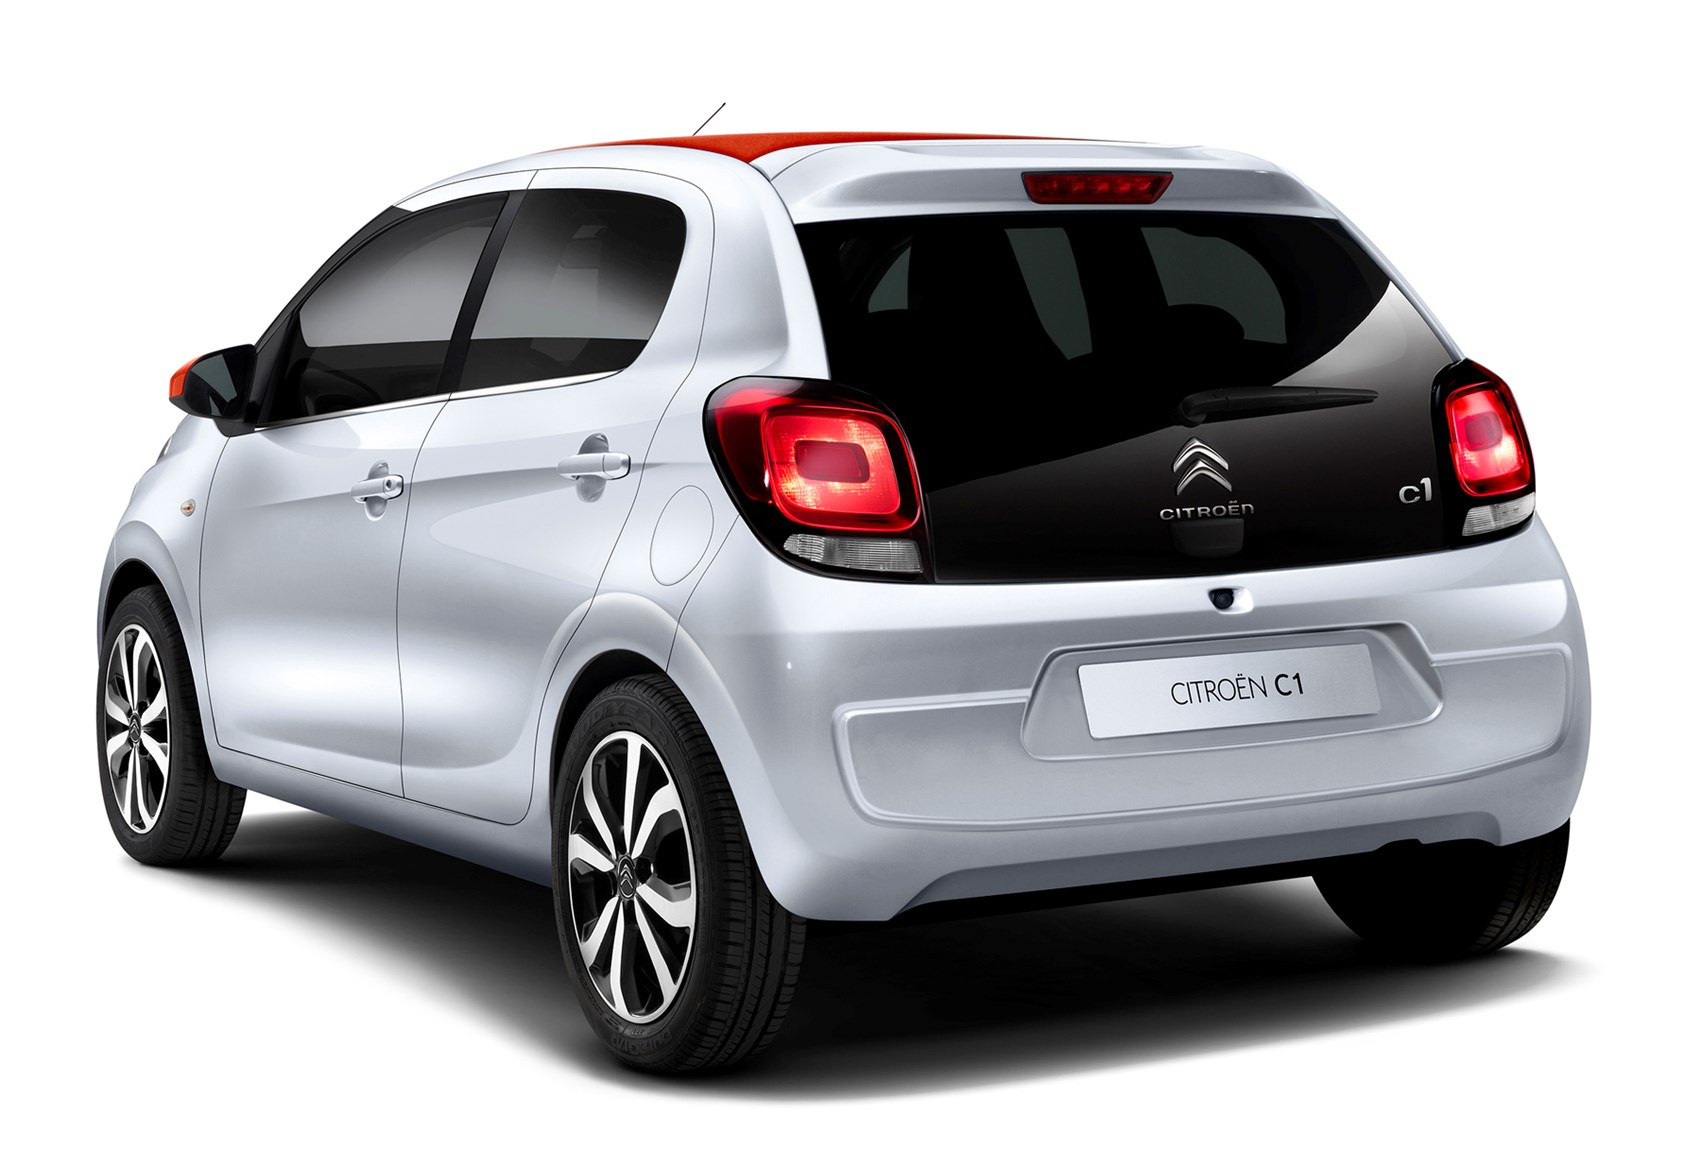 Citroën C1 Hatchback Review (2014 - ) | Parkers